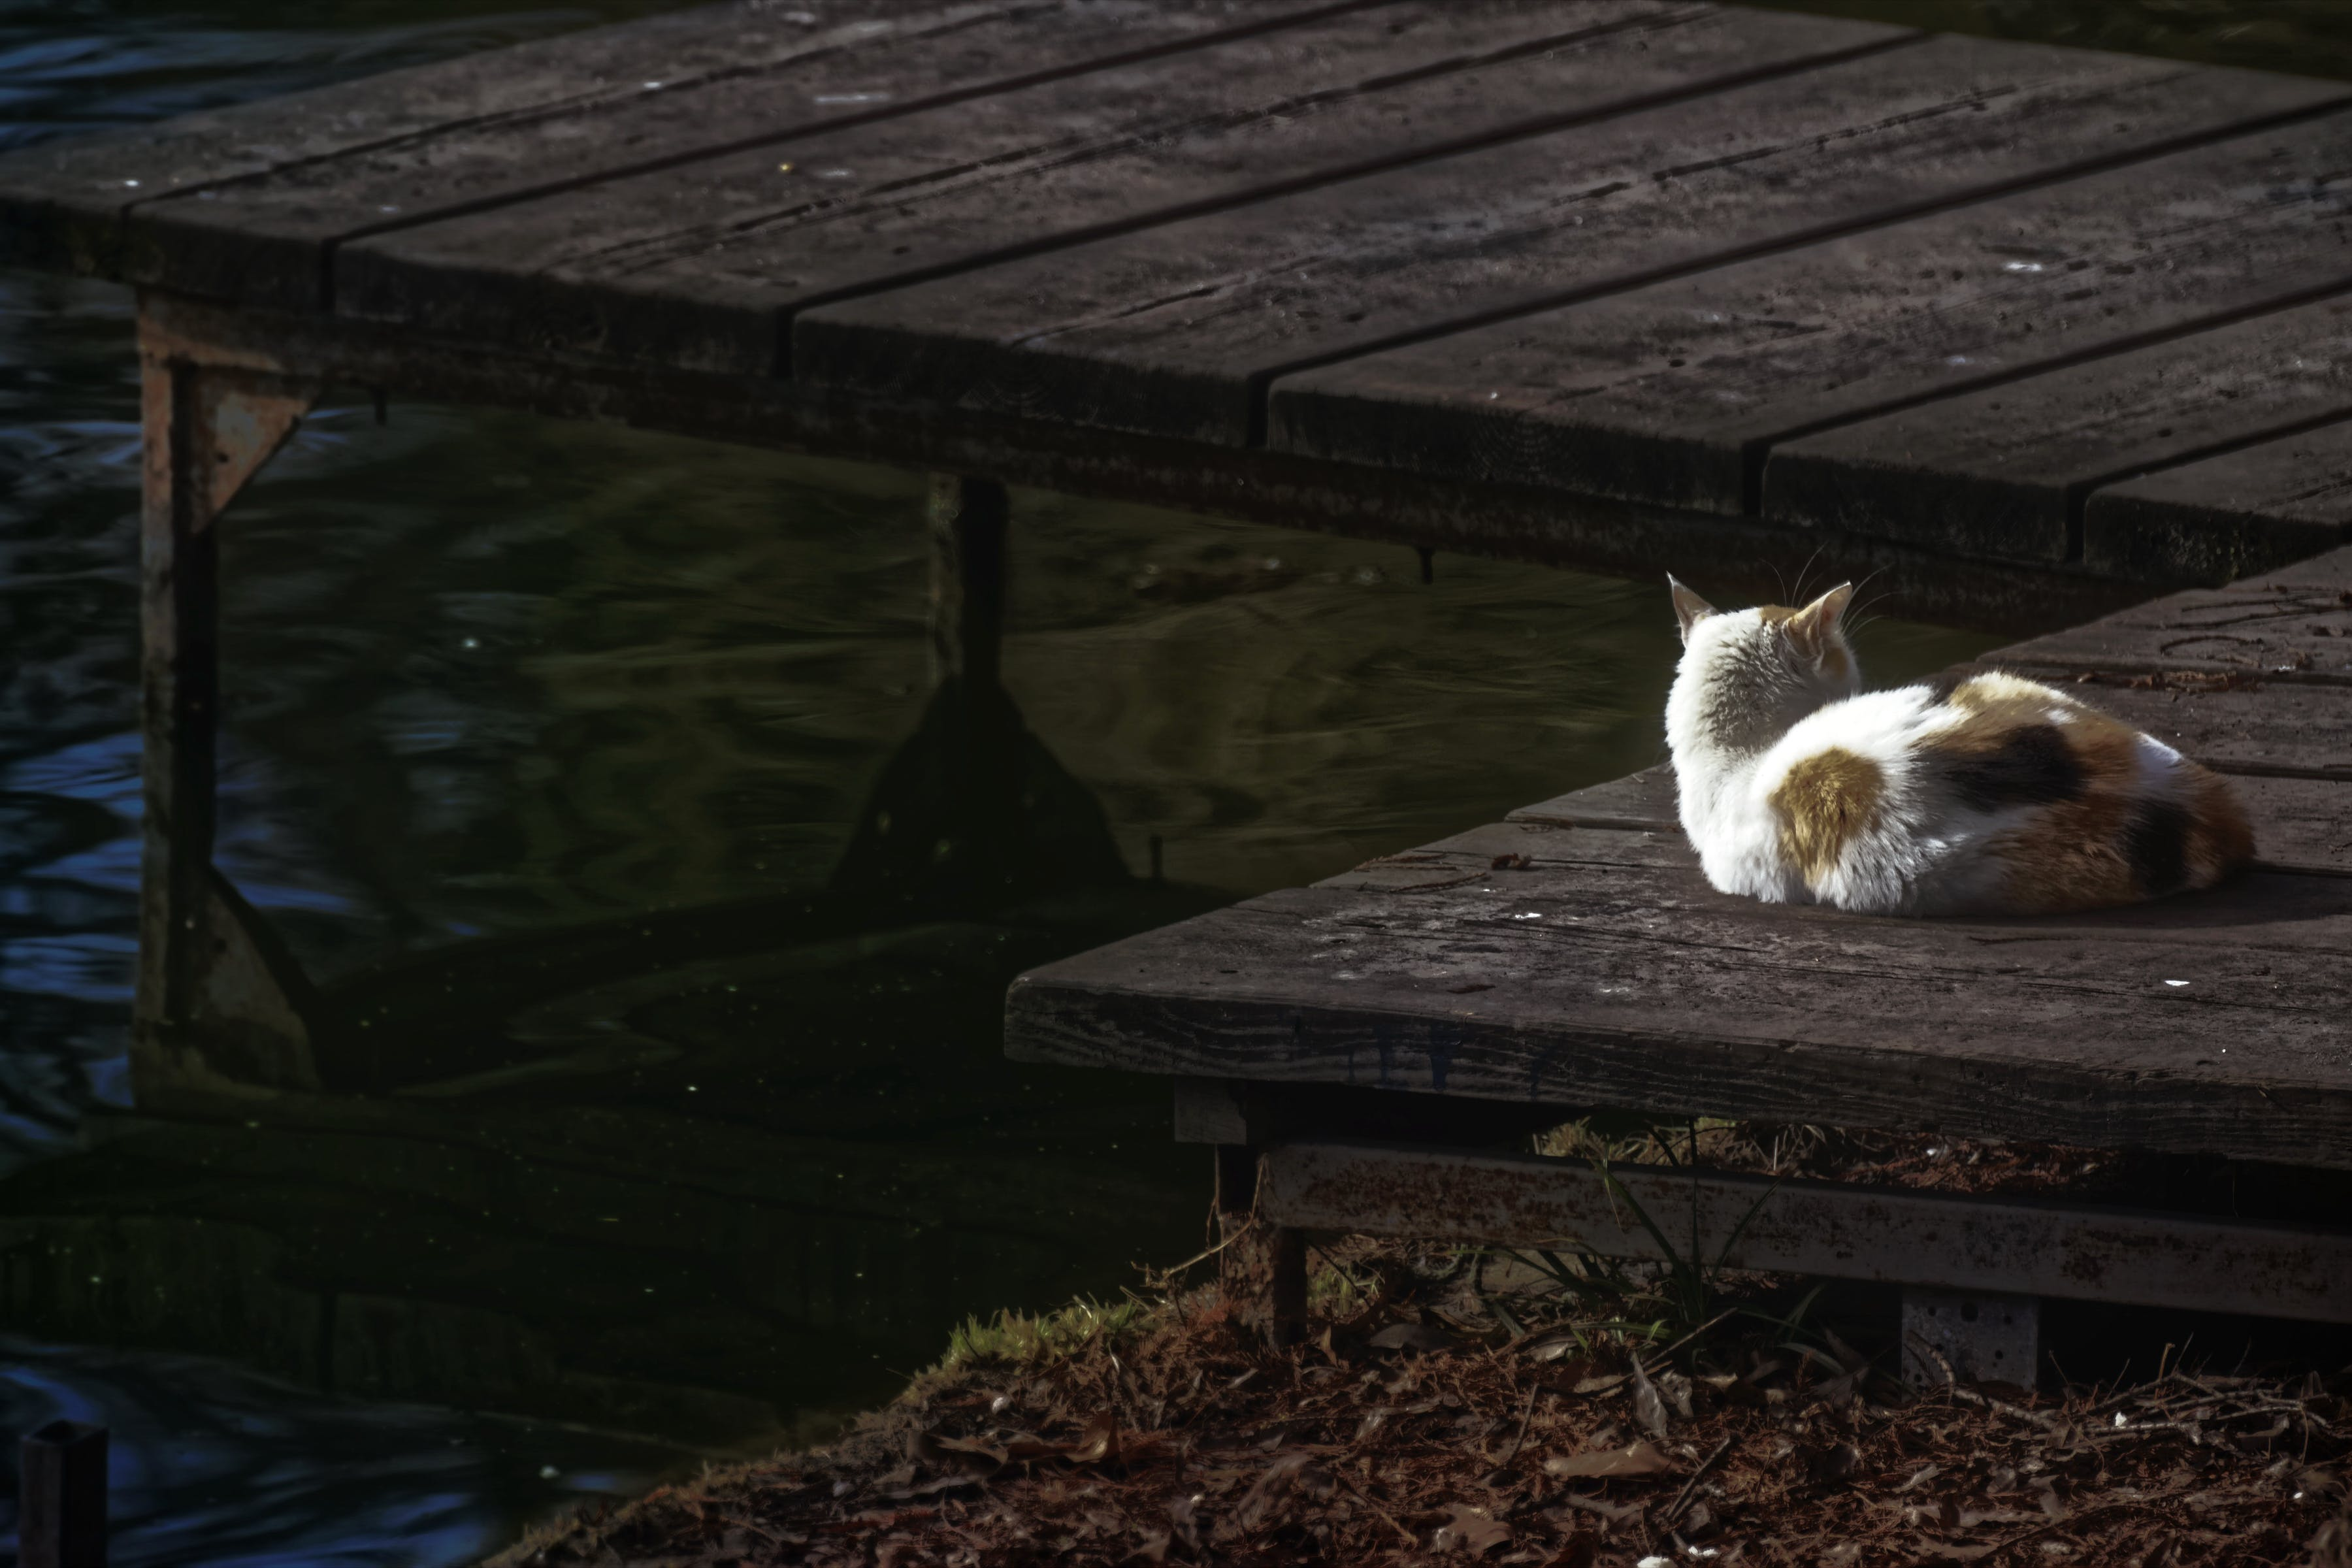 Free stock photo of animal, cat, cat sitting on a wood stand near a body of water, dried leaves